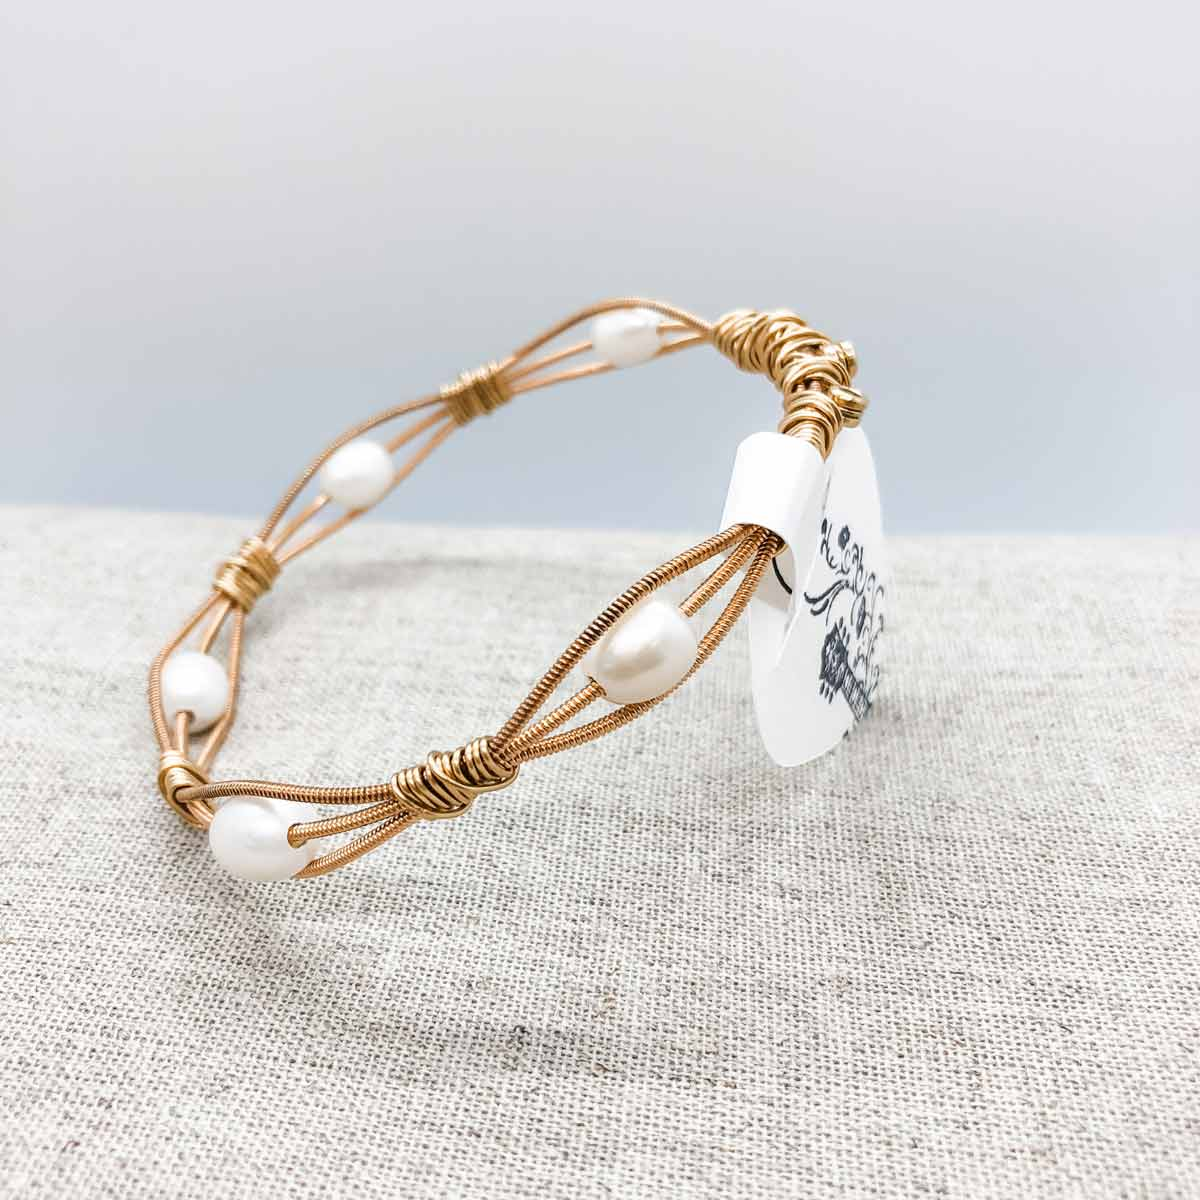 Bangle variety with added beads - Gold